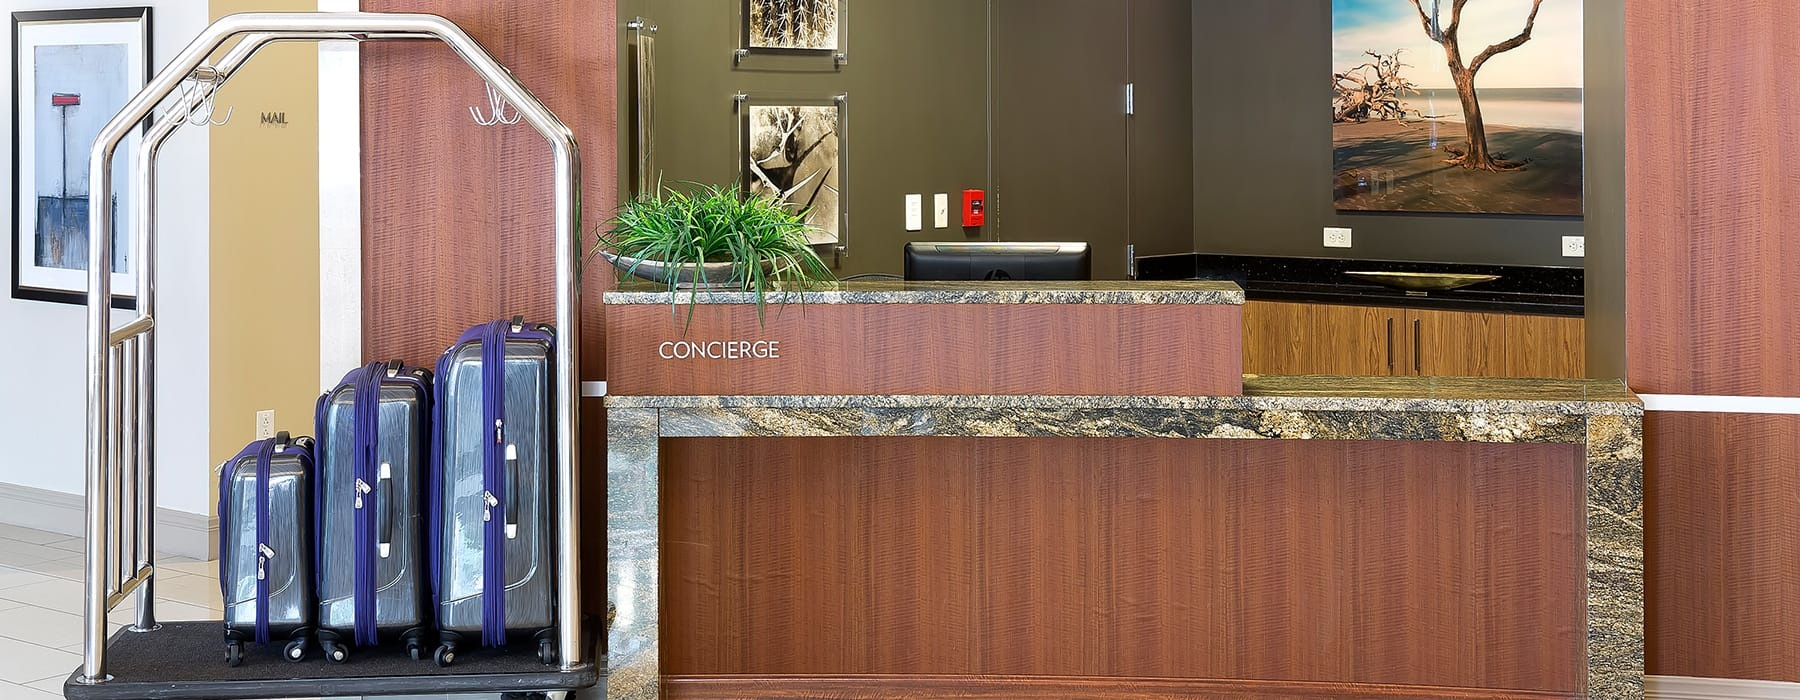 concierge counter with wooden accents and a luggage rack